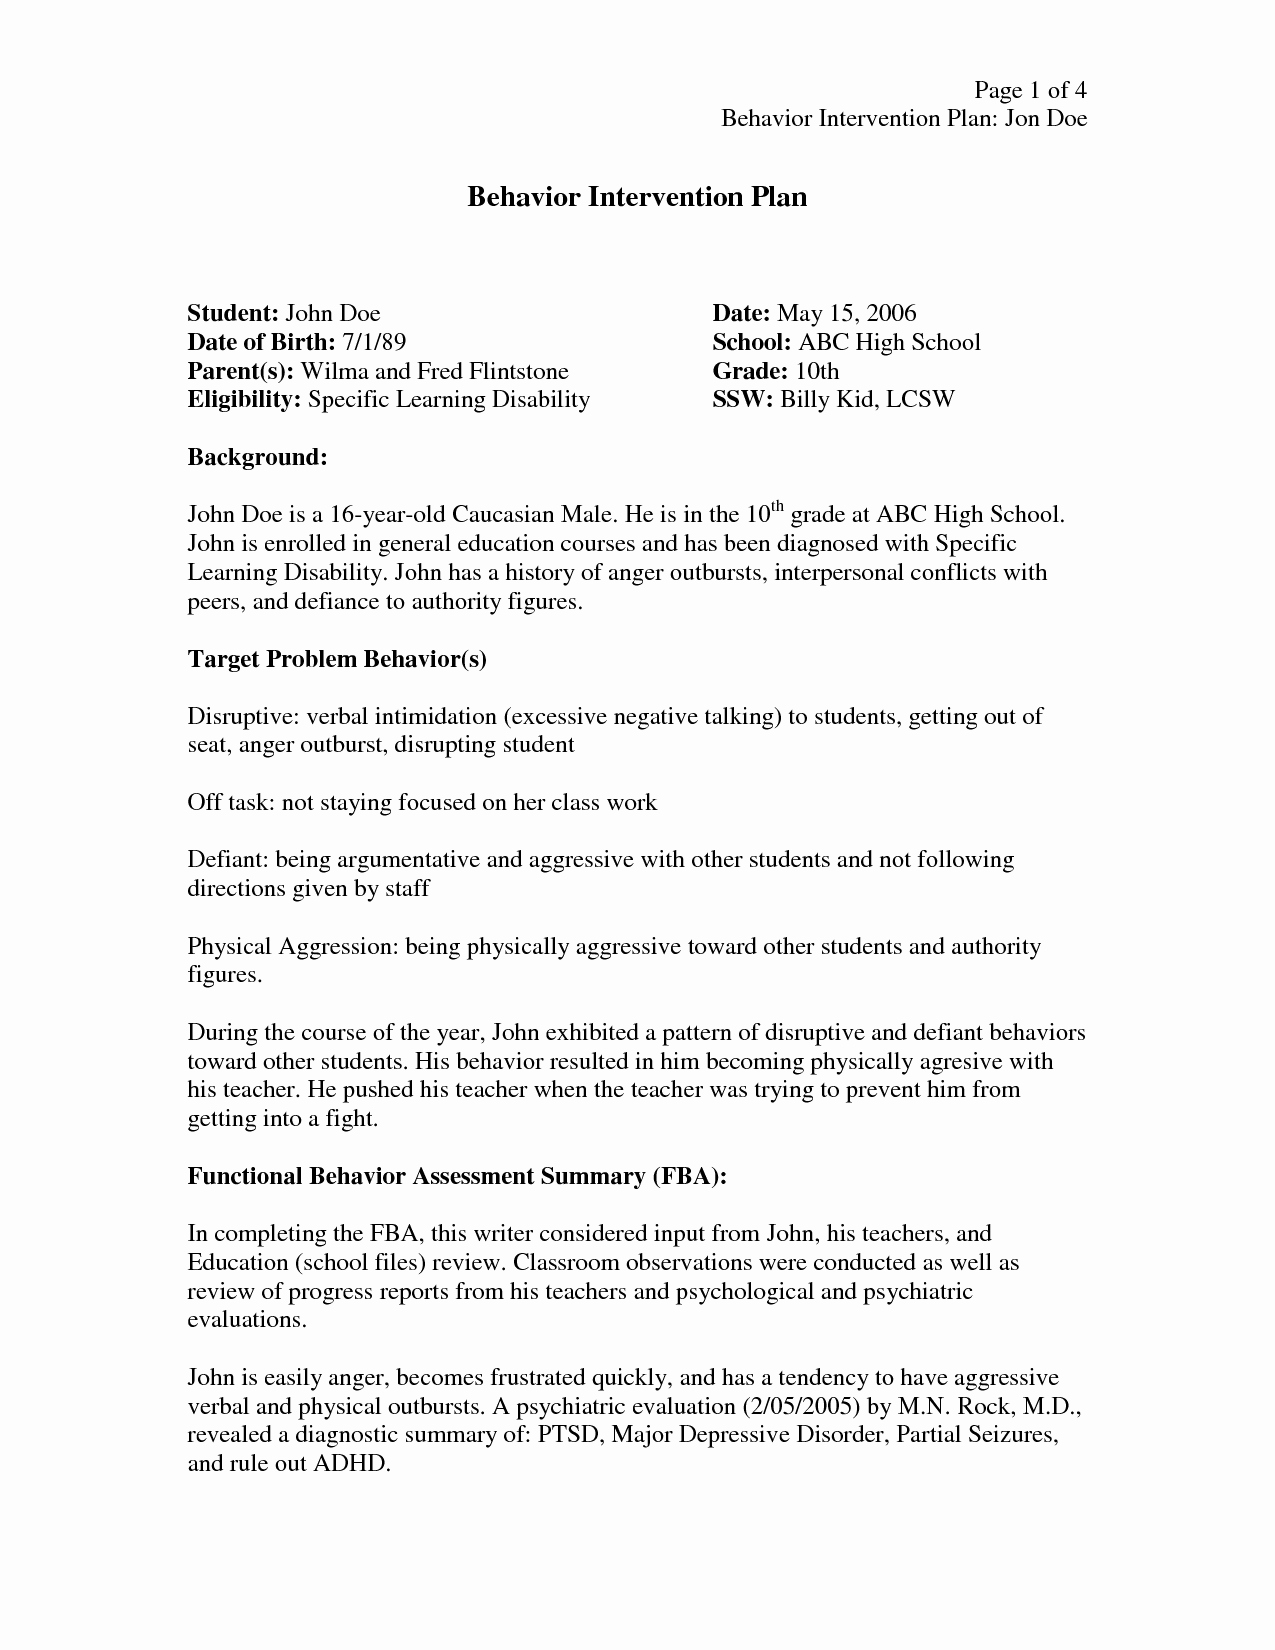 Behavior Intervention Plan Example Fresh Behavior Intervention Plan Template